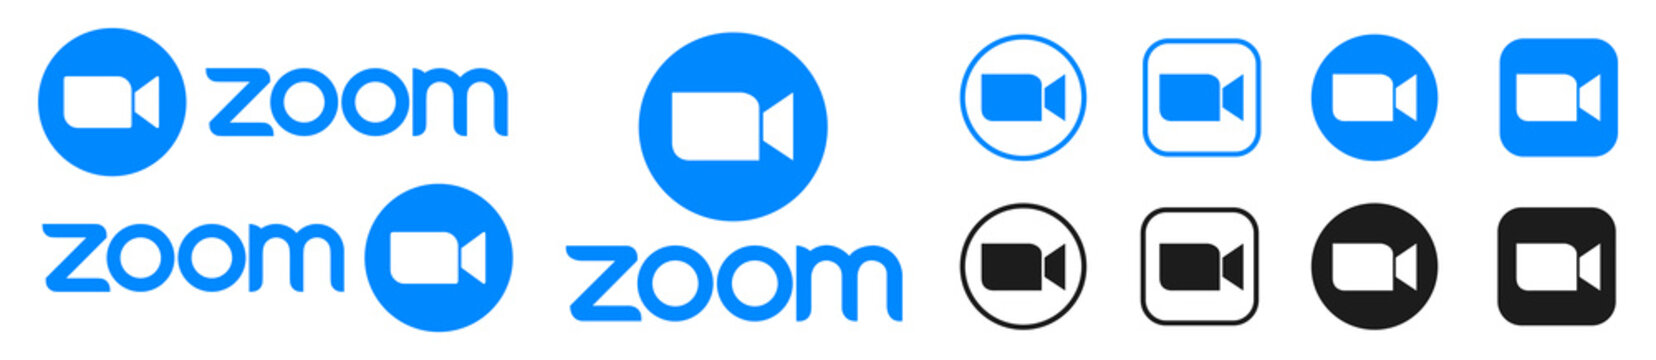 Kiev, Ukraine - December 13, 2020: Zoom camera icon - popular application for video communications platform for video and audio conferencing, webinars, chat. Zoom video logo. Editorial vector